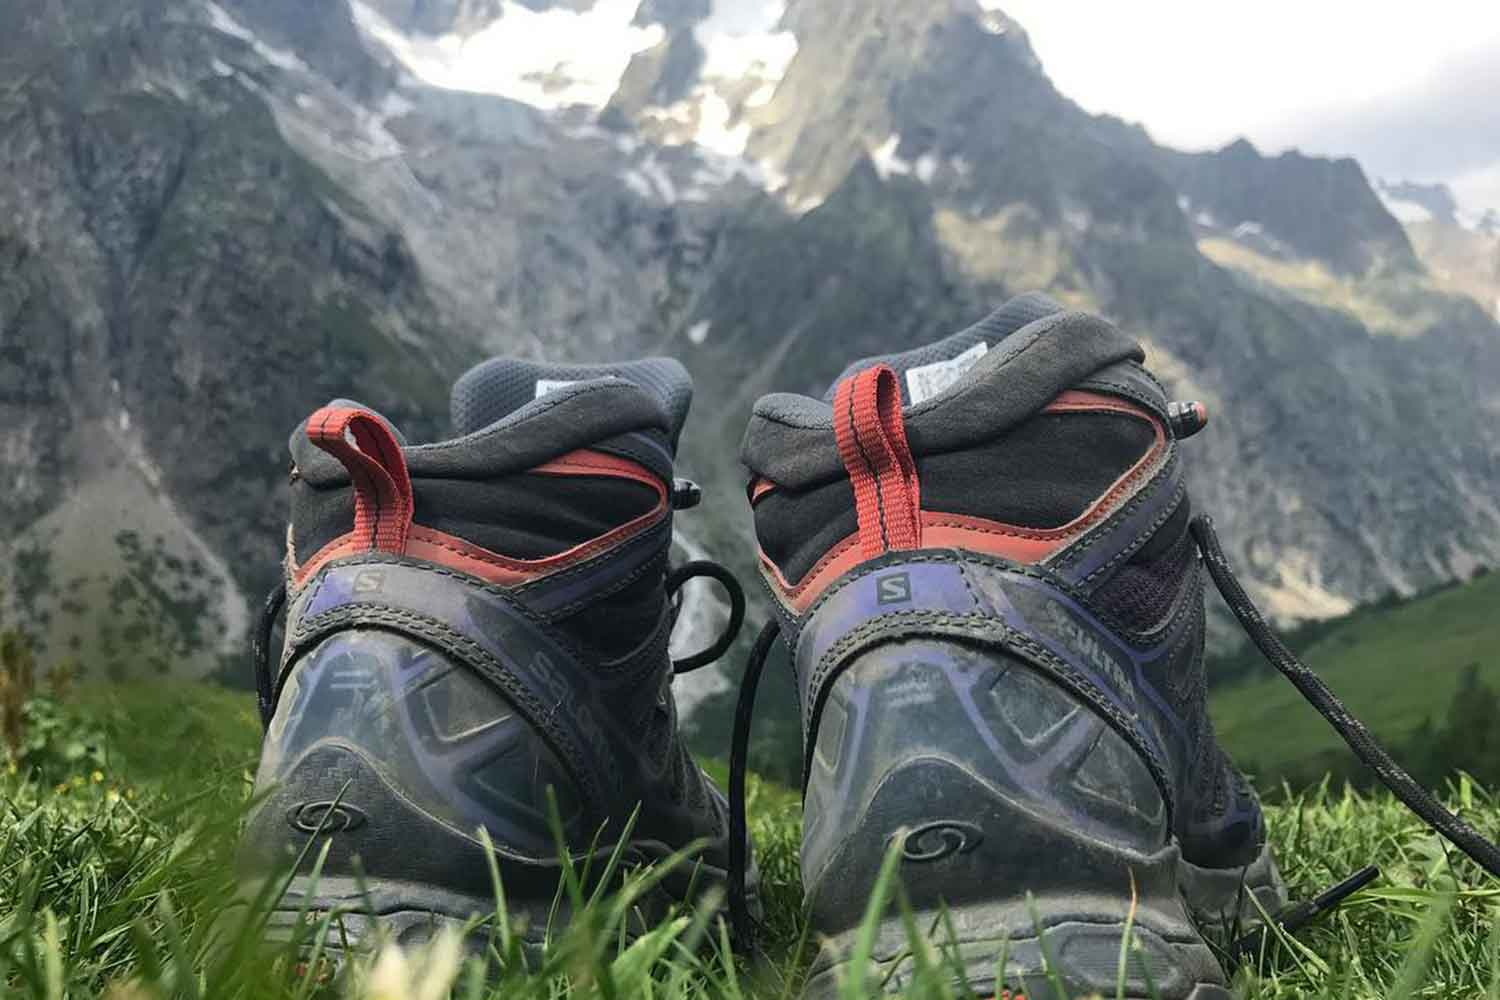 f2ffdf715bf Packing List for the Tour du Mont Blanc - Blog - Macs Adventure